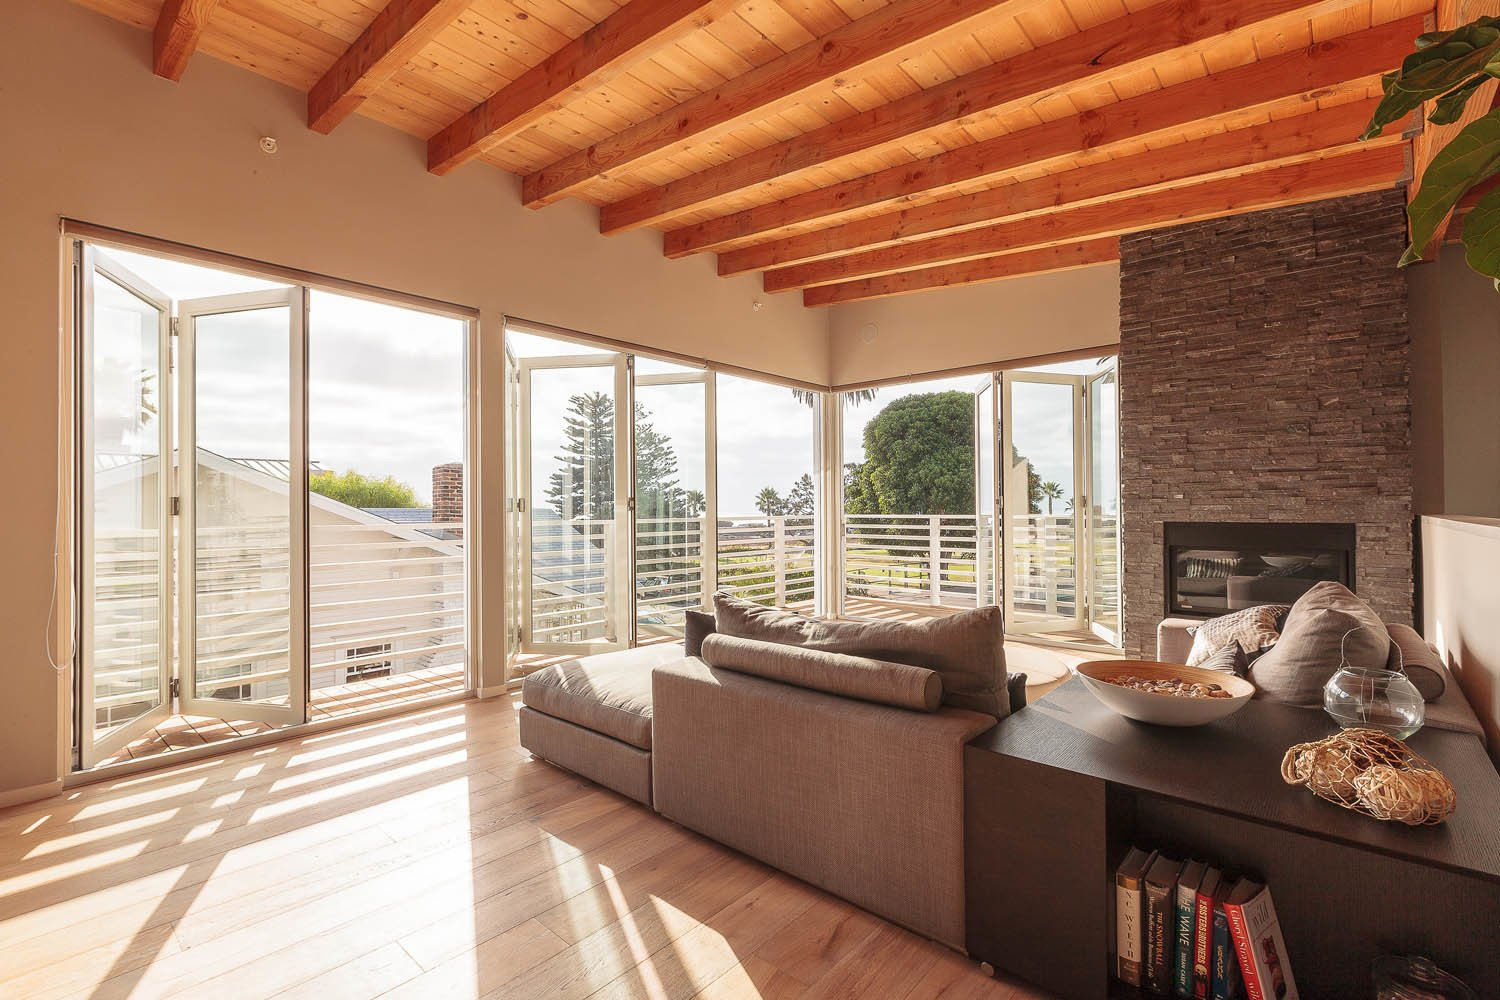 3 Dynamic Solutions For Championing Seamless Indoor ... on Seamless Indoor Outdoor Living id=60992